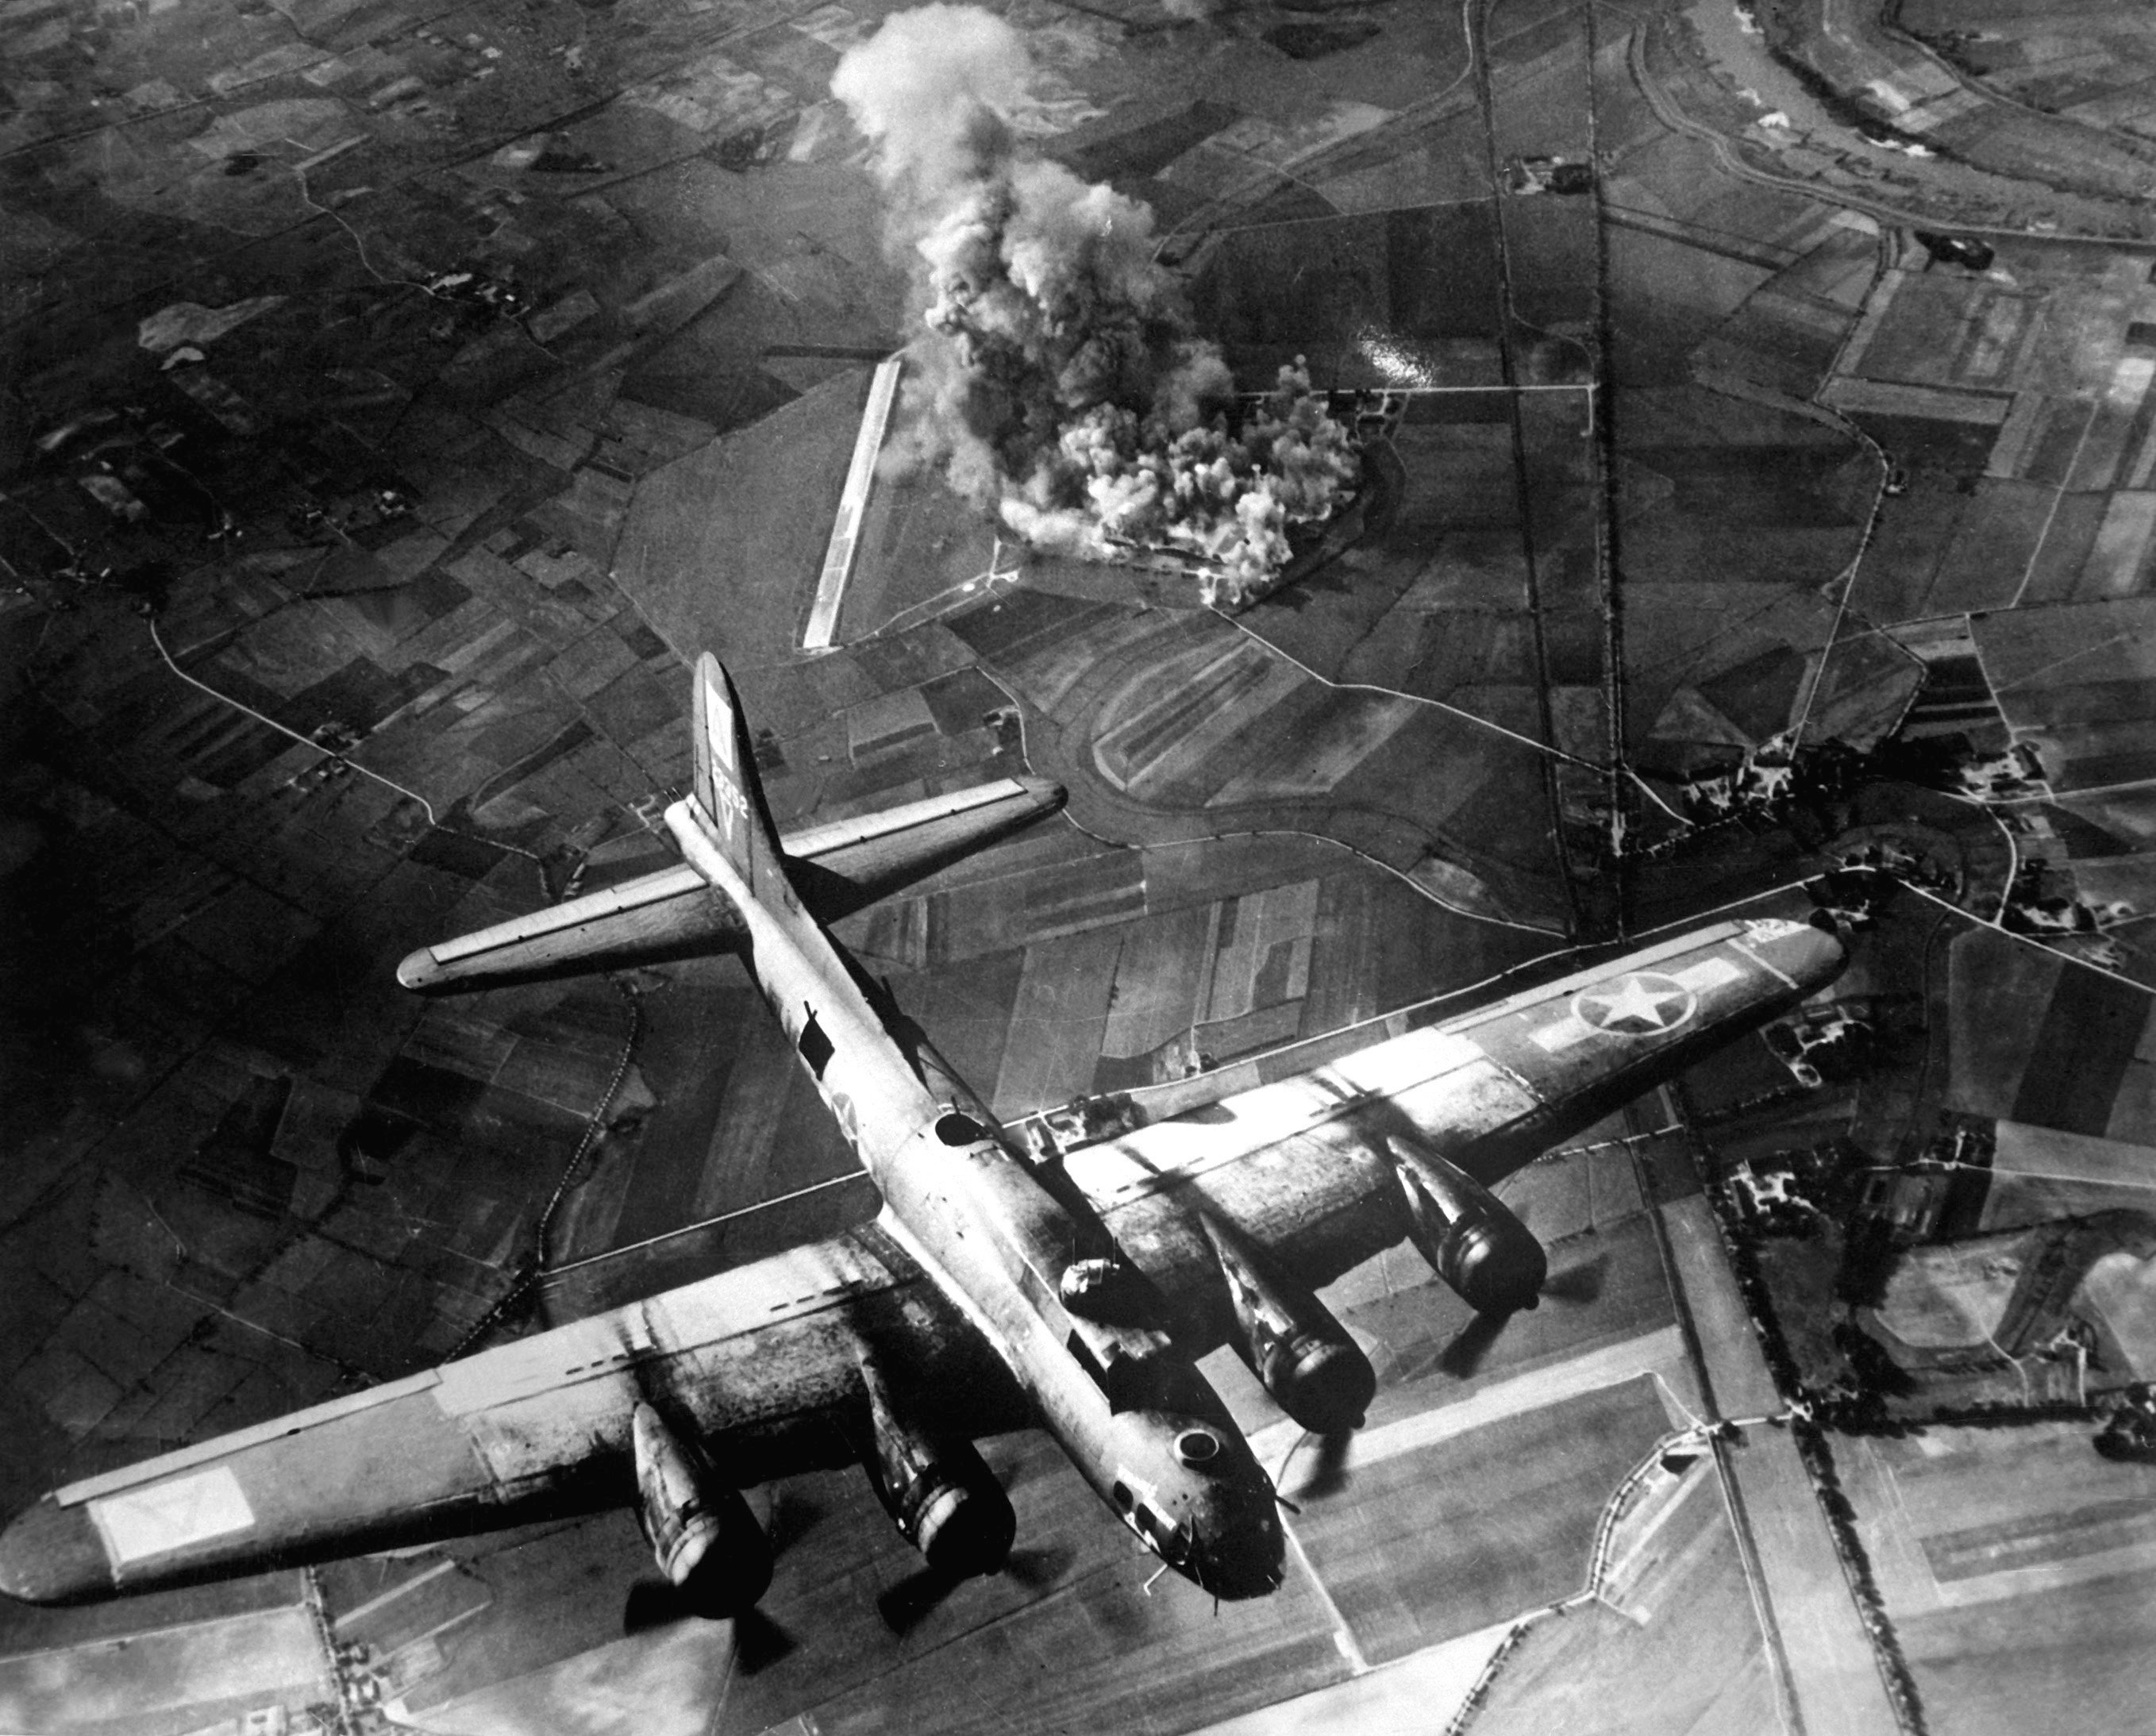 impact of wwii bombing raids felt at edge of space